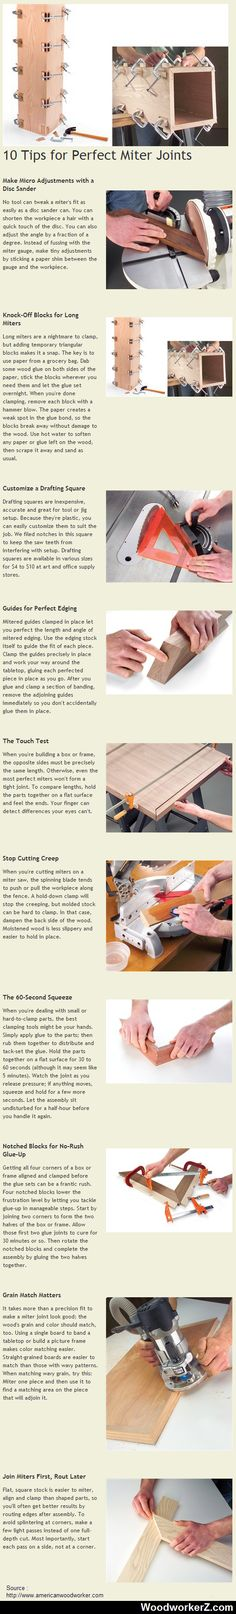 10 Tips for Perfect Miter Joints